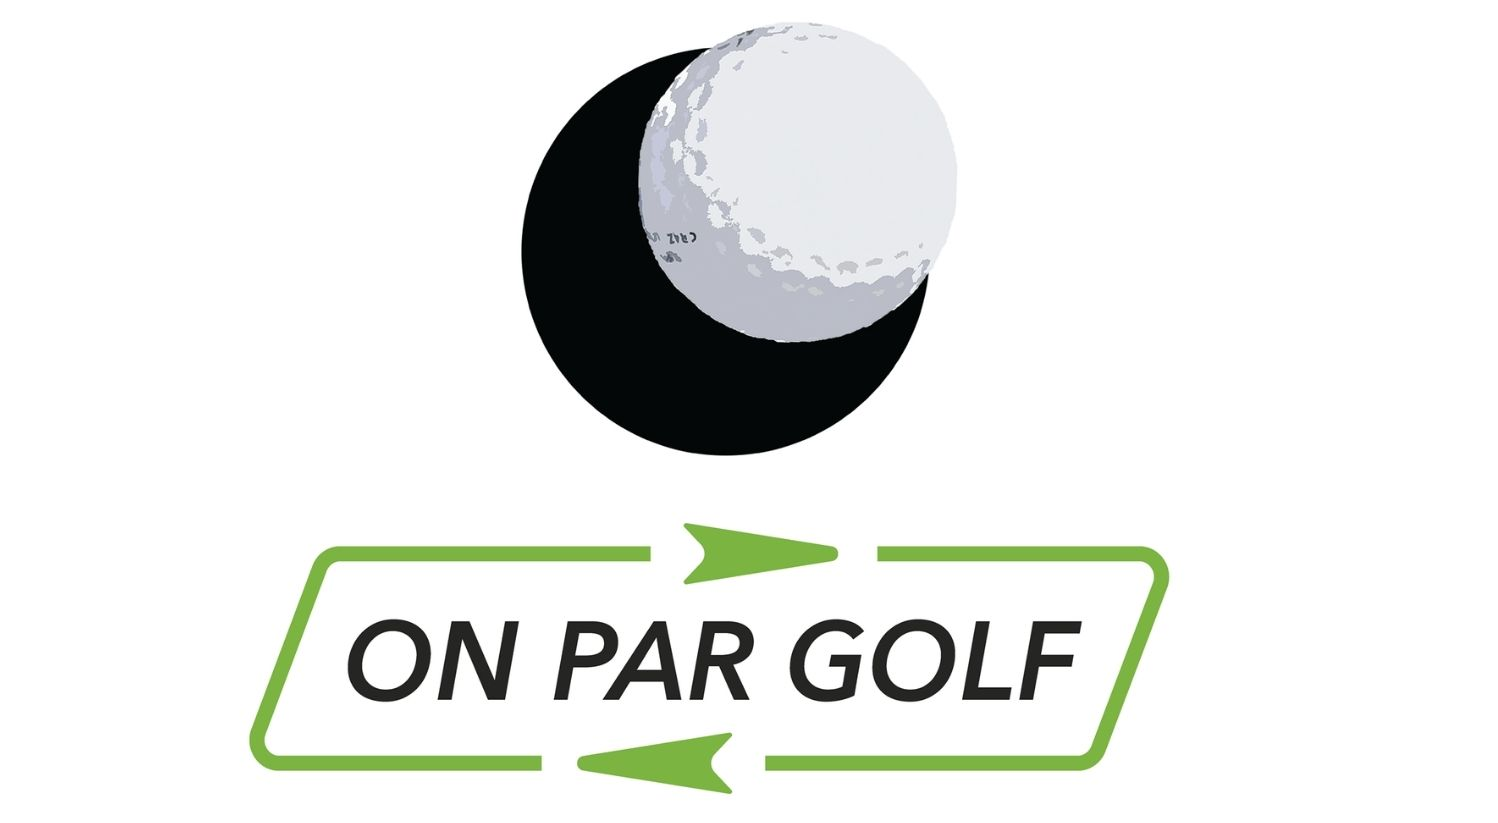 On Par Golf logo